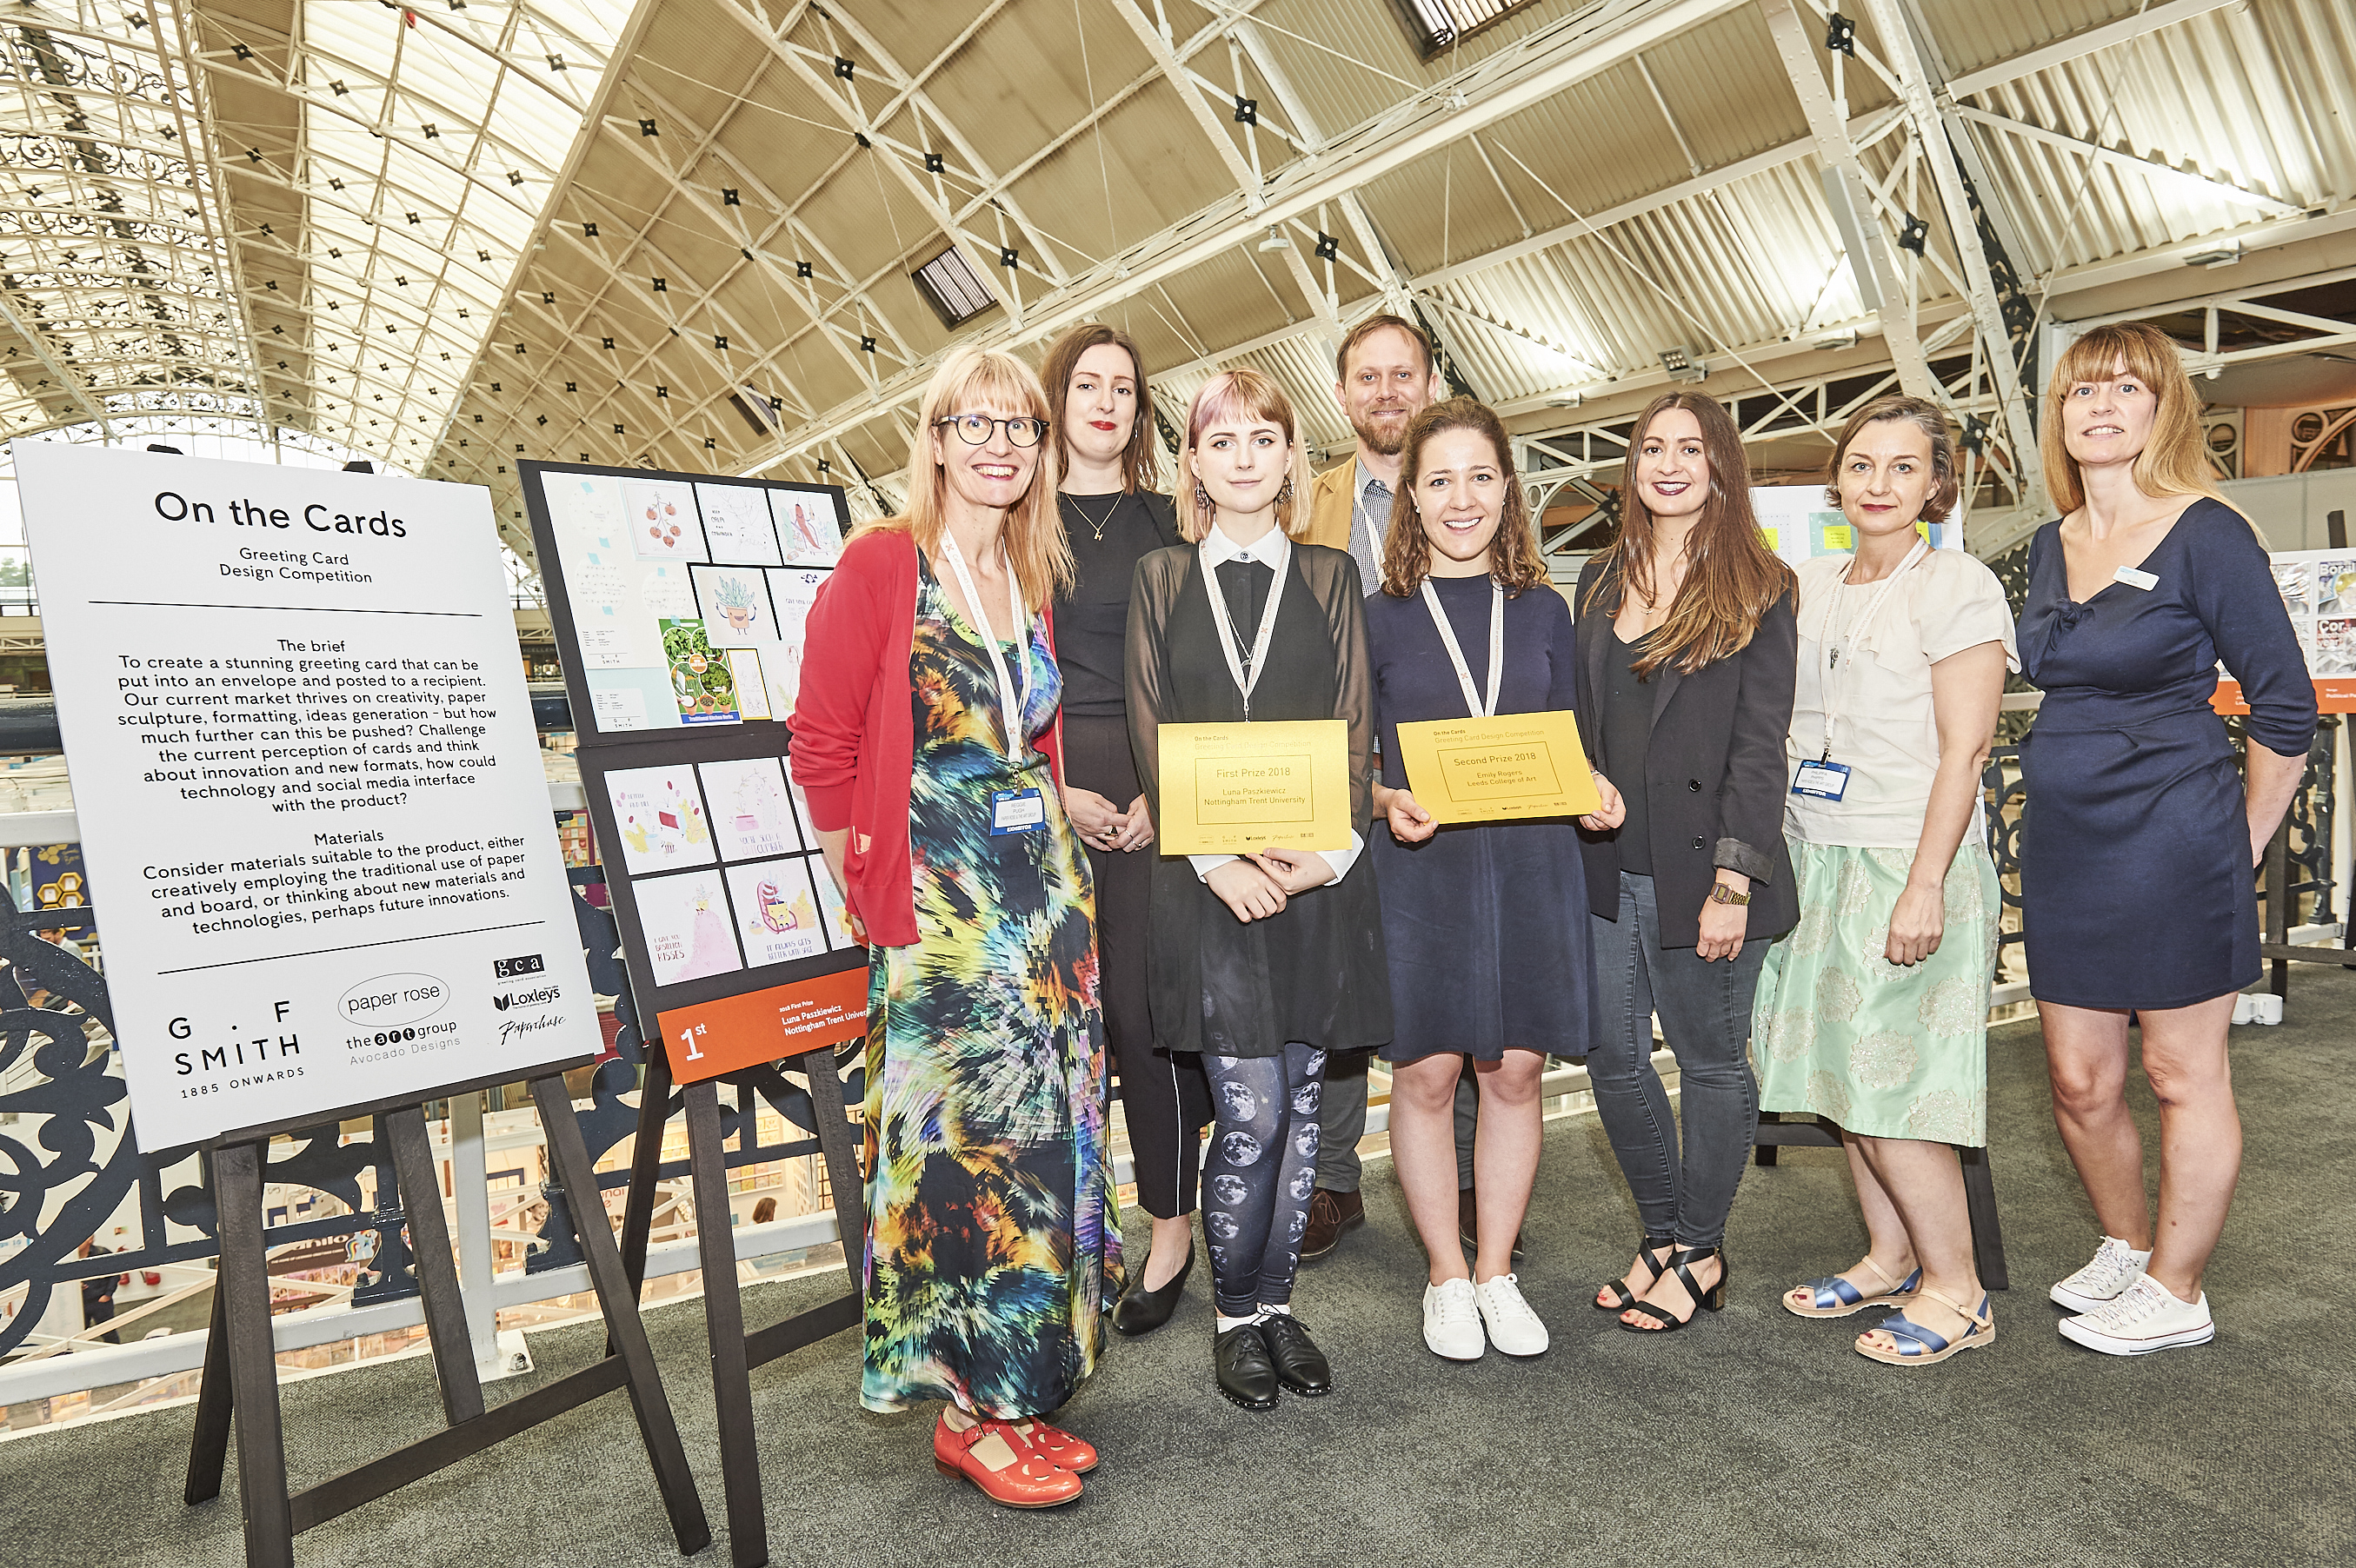 Above: Reggie (far left) with some of the On the Cards student winners at PG Live, as well as Paperchase's Gemma Clooney (second right) and (second left) Hazel Walker (then Paperchase, now Waterstones), GF Smith's Mark Jessett, both co-sponsors of the initiative as well as Gale Astley (PG's former deputy editor).